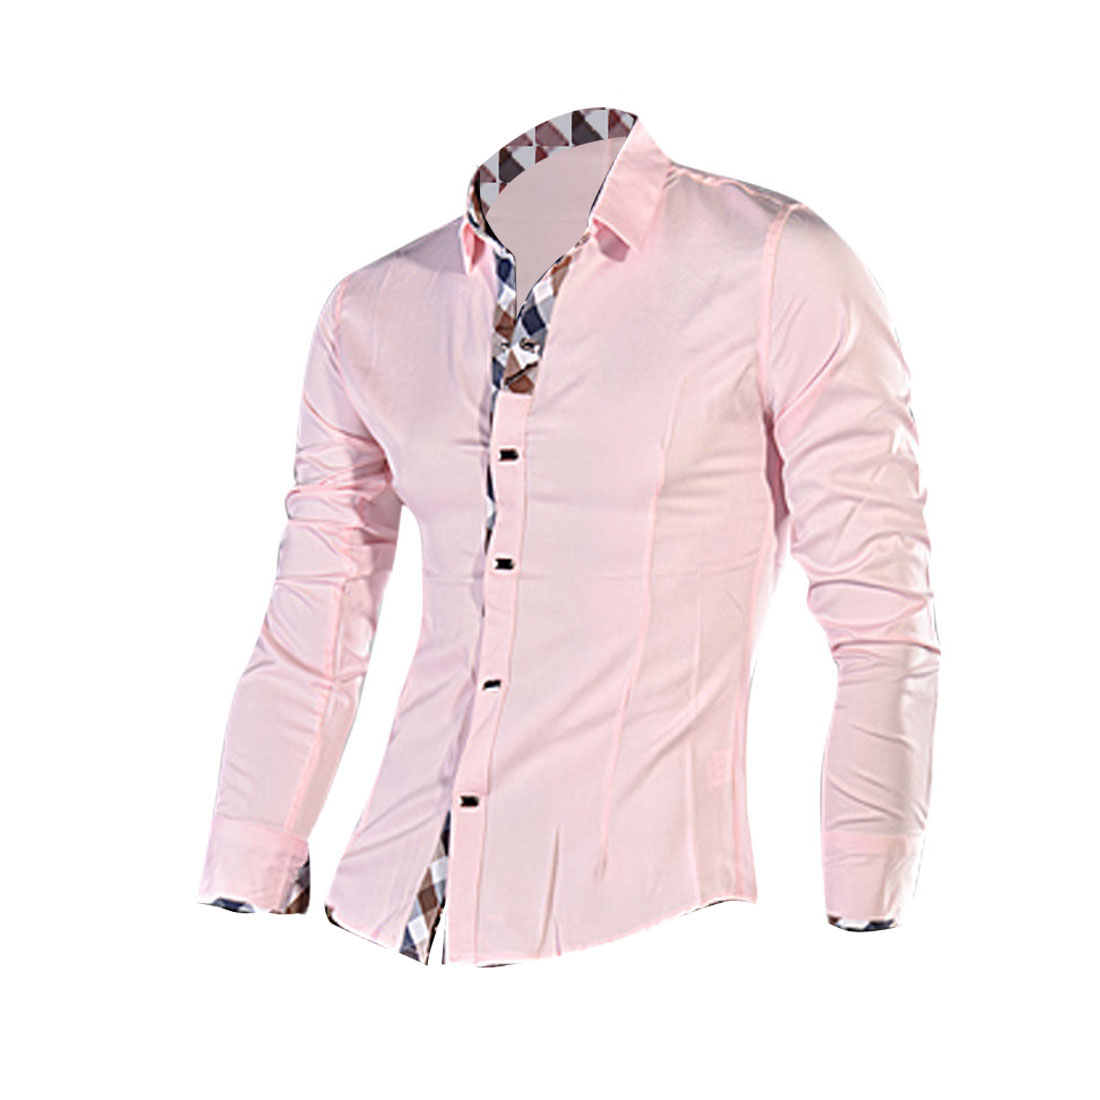 Men Button Closure Plaids Splice Cuffs Collar Shirt Pink M